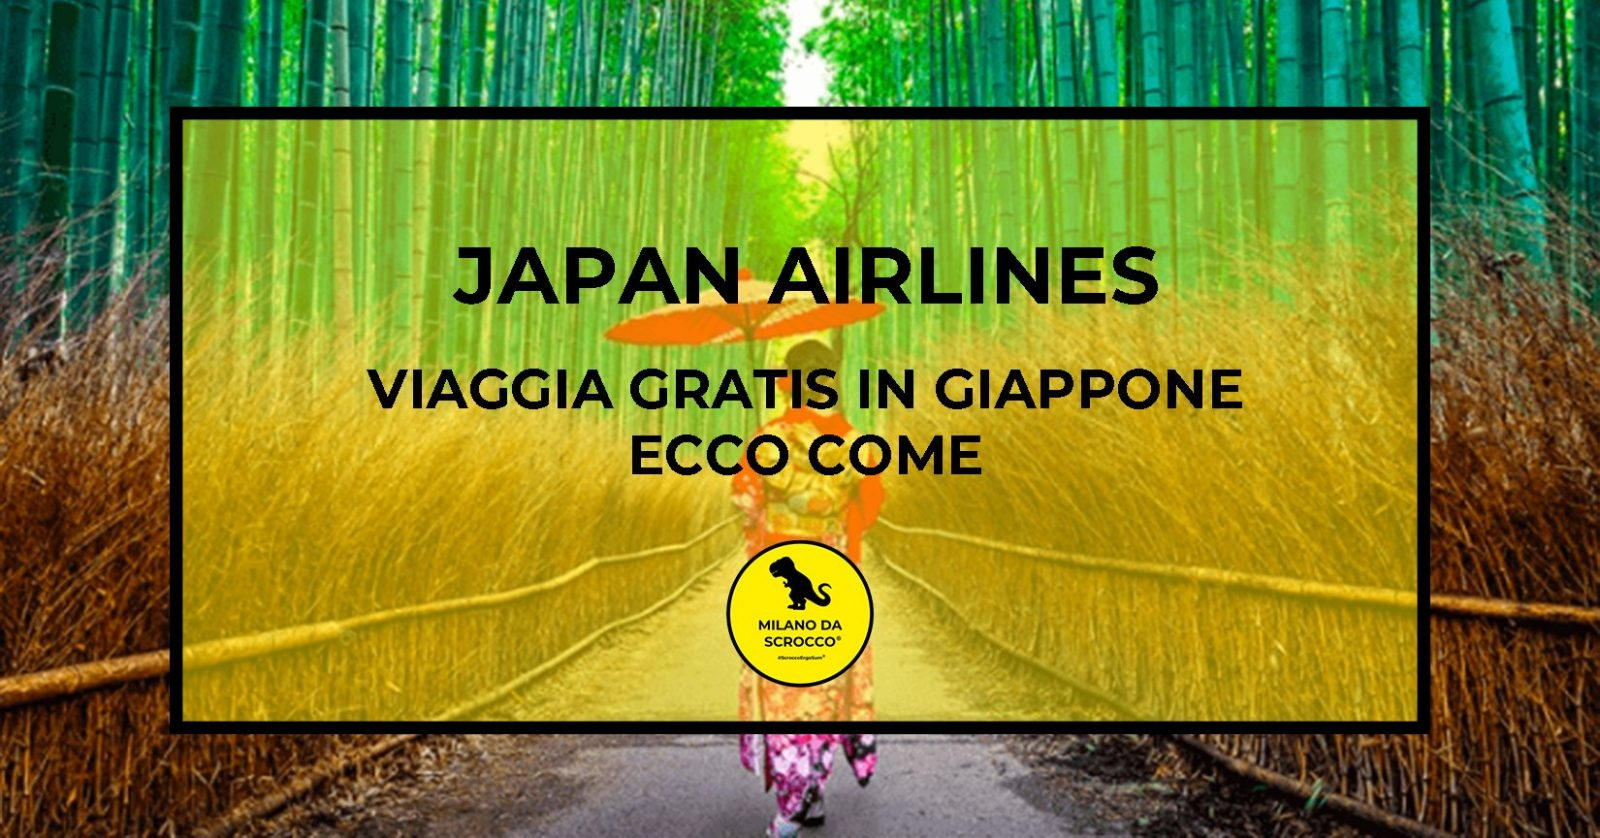 You are currently viewing Japan Airlines, viaggia gratis in Giappone: ecco come